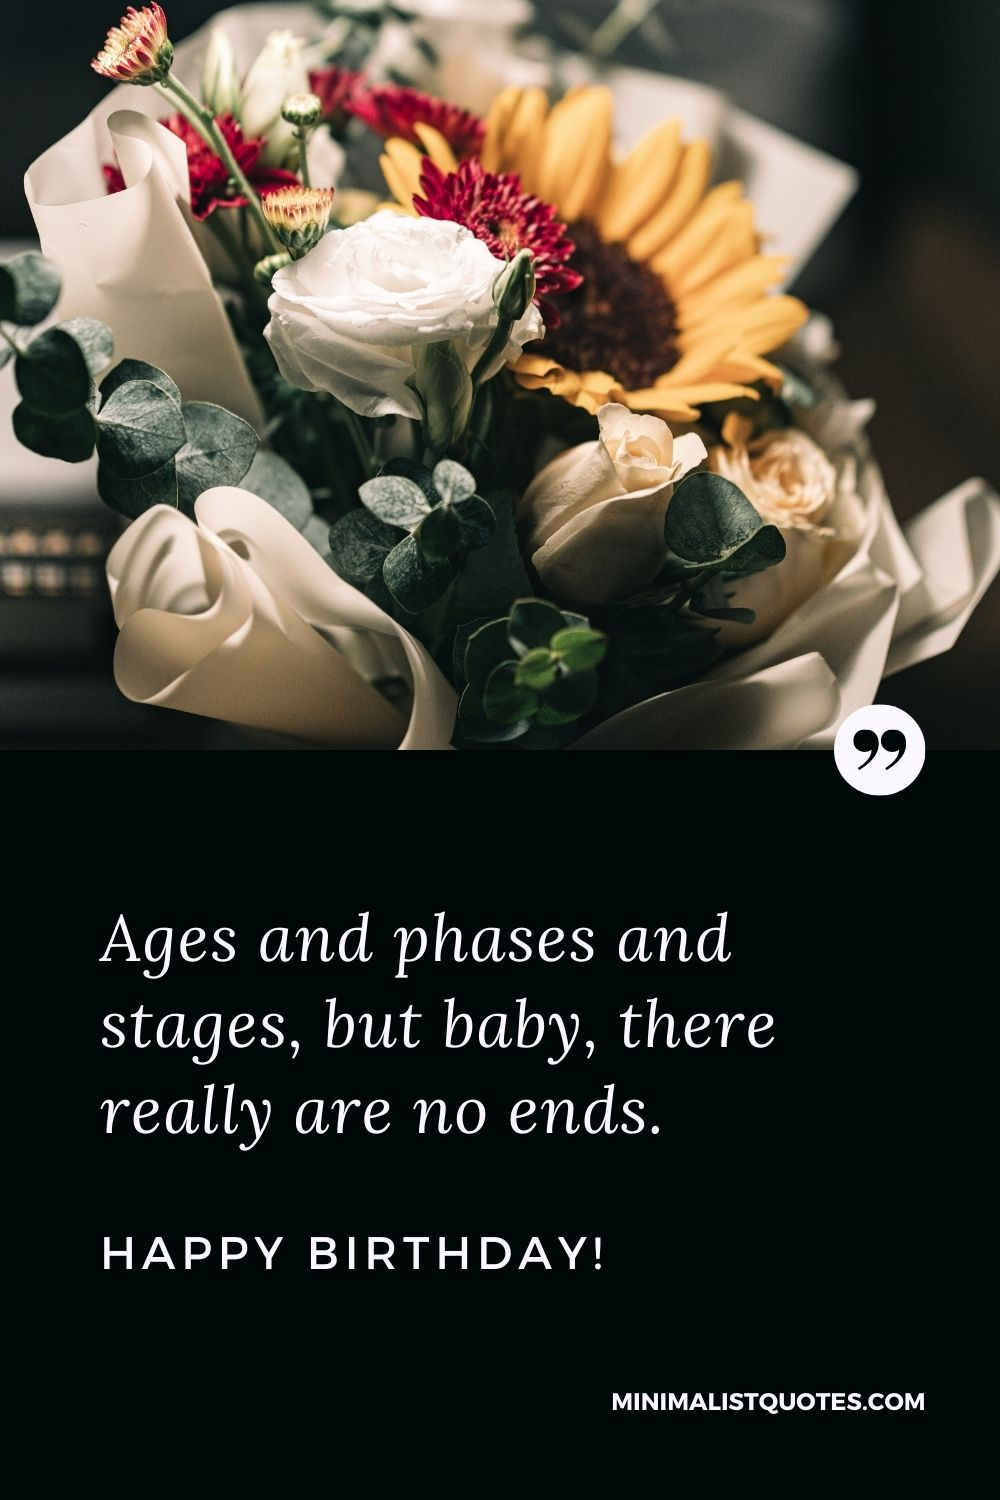 Birthday Quote, Wish & Message With Image: Ages and phases and stages, but baby, there really are no ends. Happy Birthday!